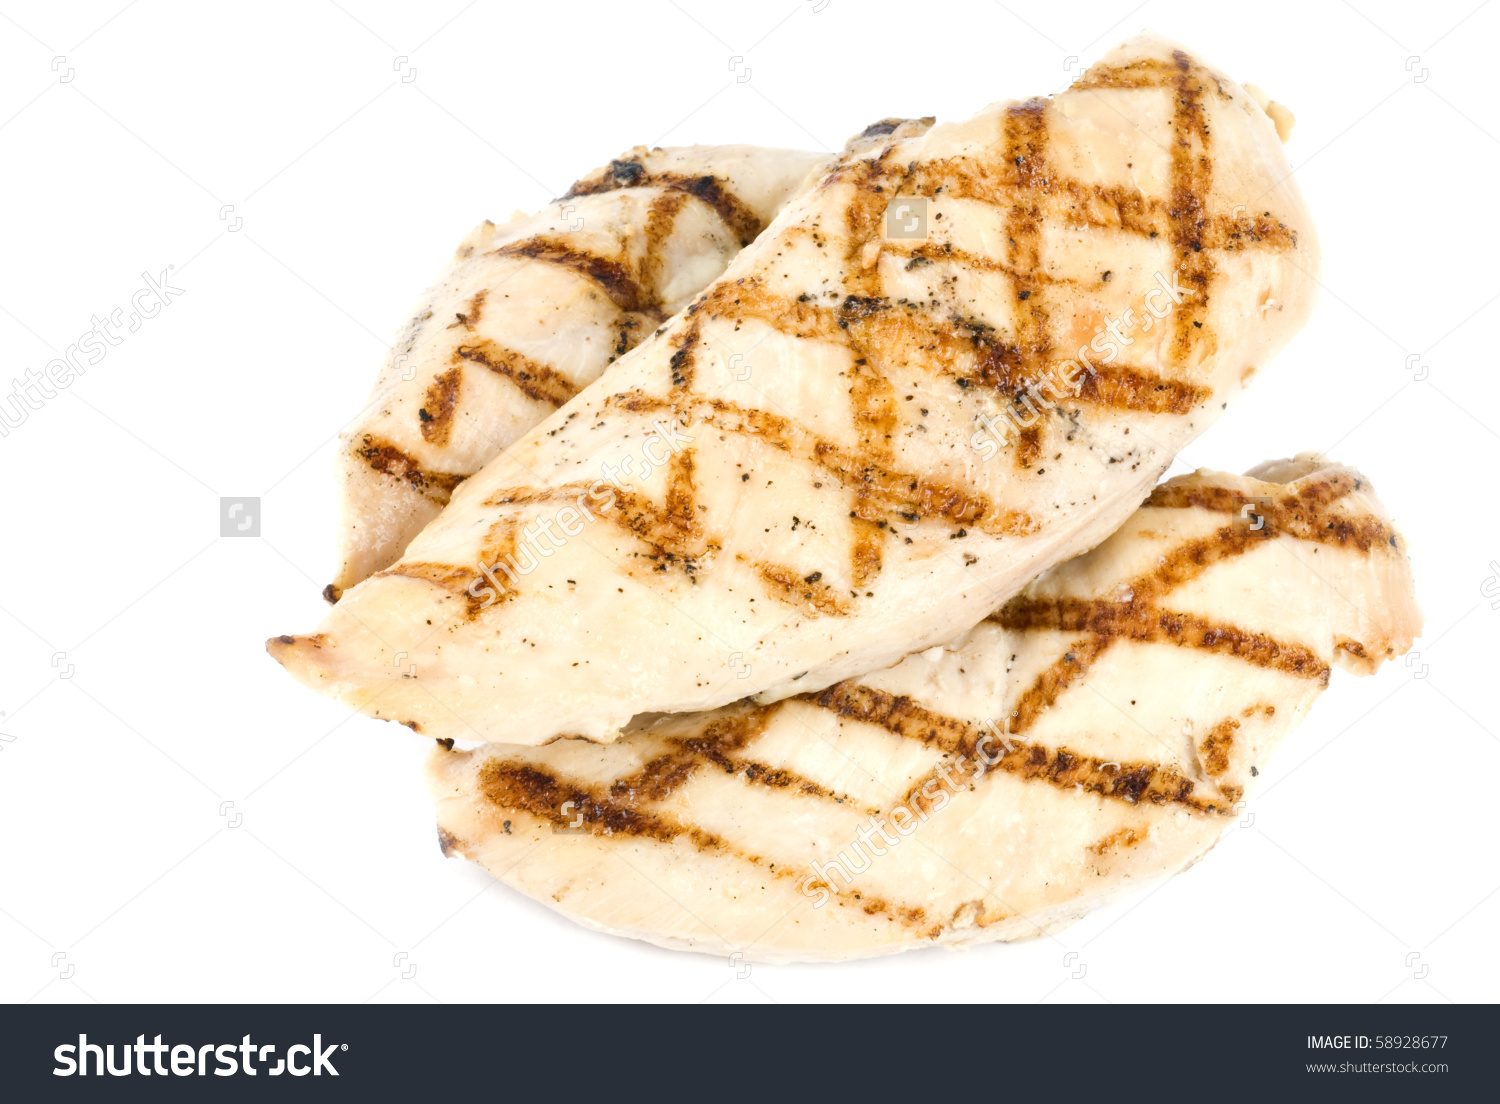 Grilled Chicken Breasts Isolated On White Stock Photo 58928677.